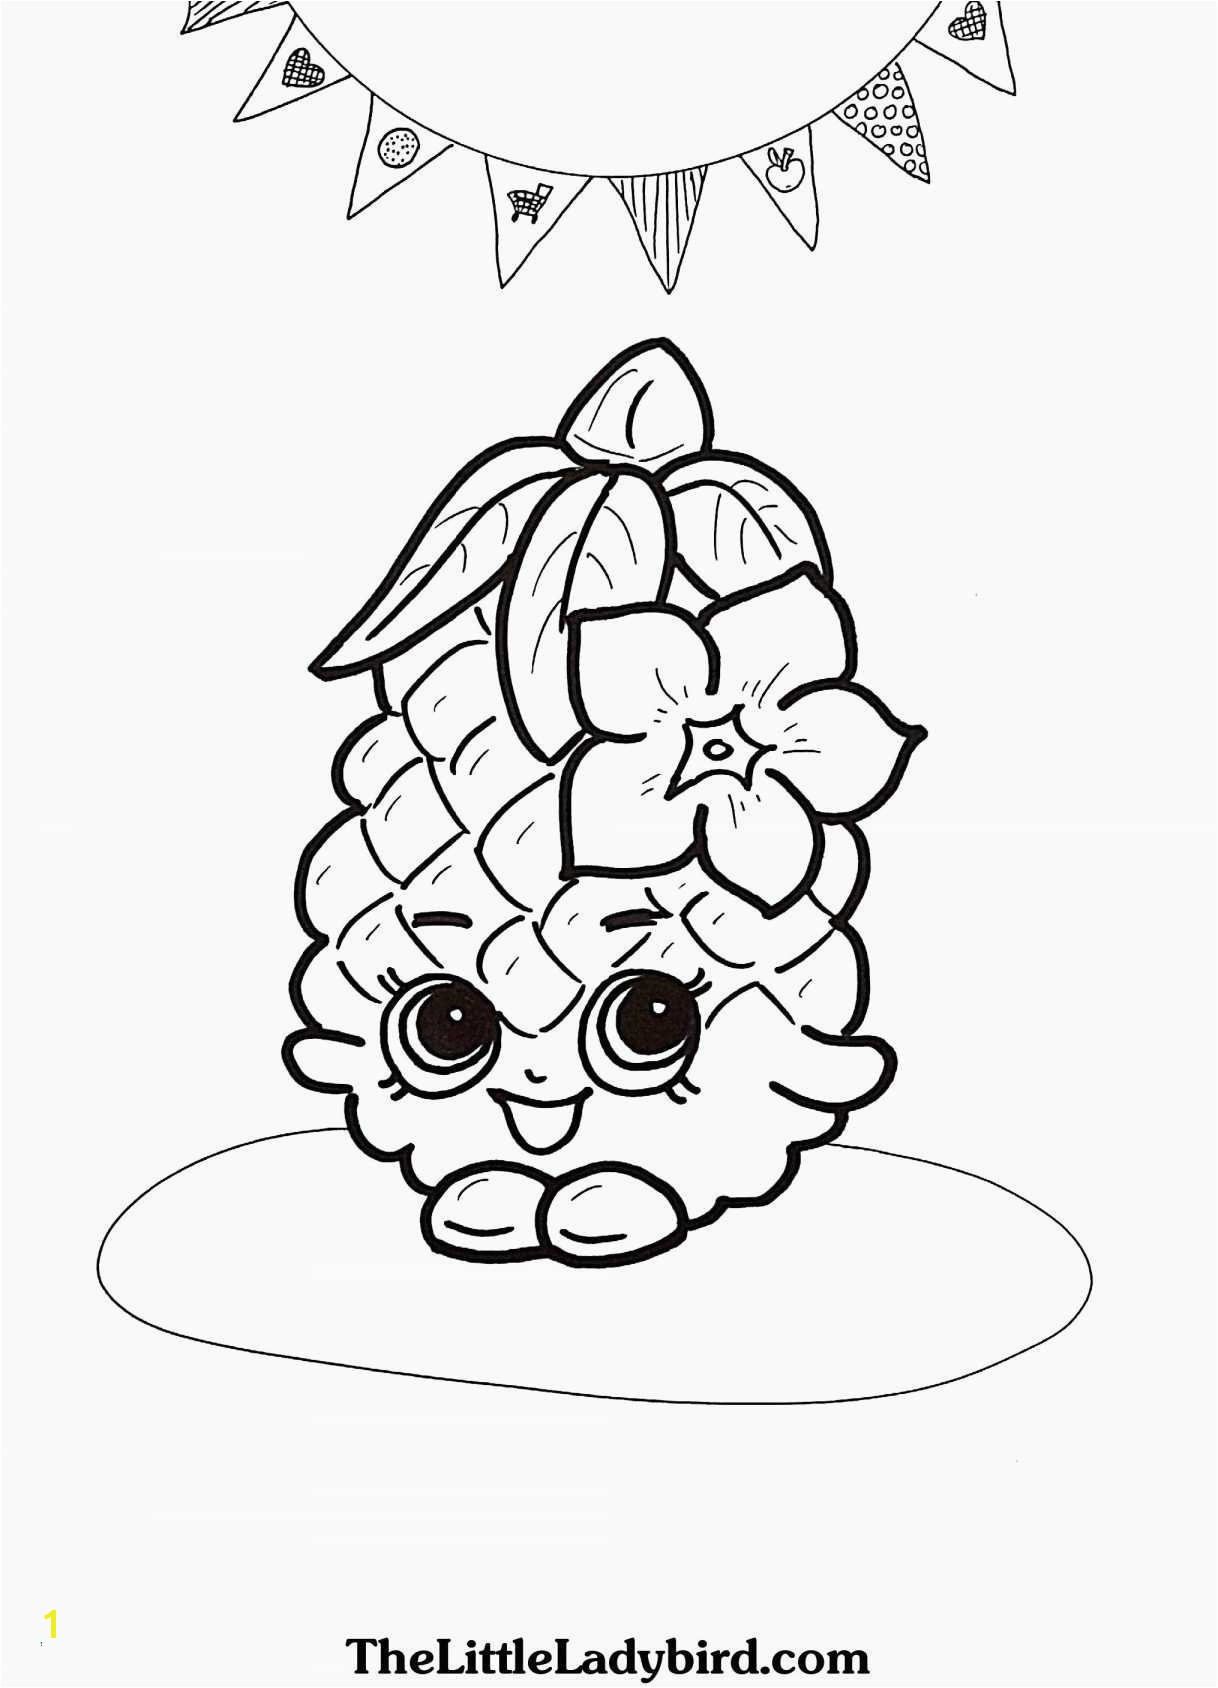 30 Inspirational Sports Coloring Pages cloud9vegas